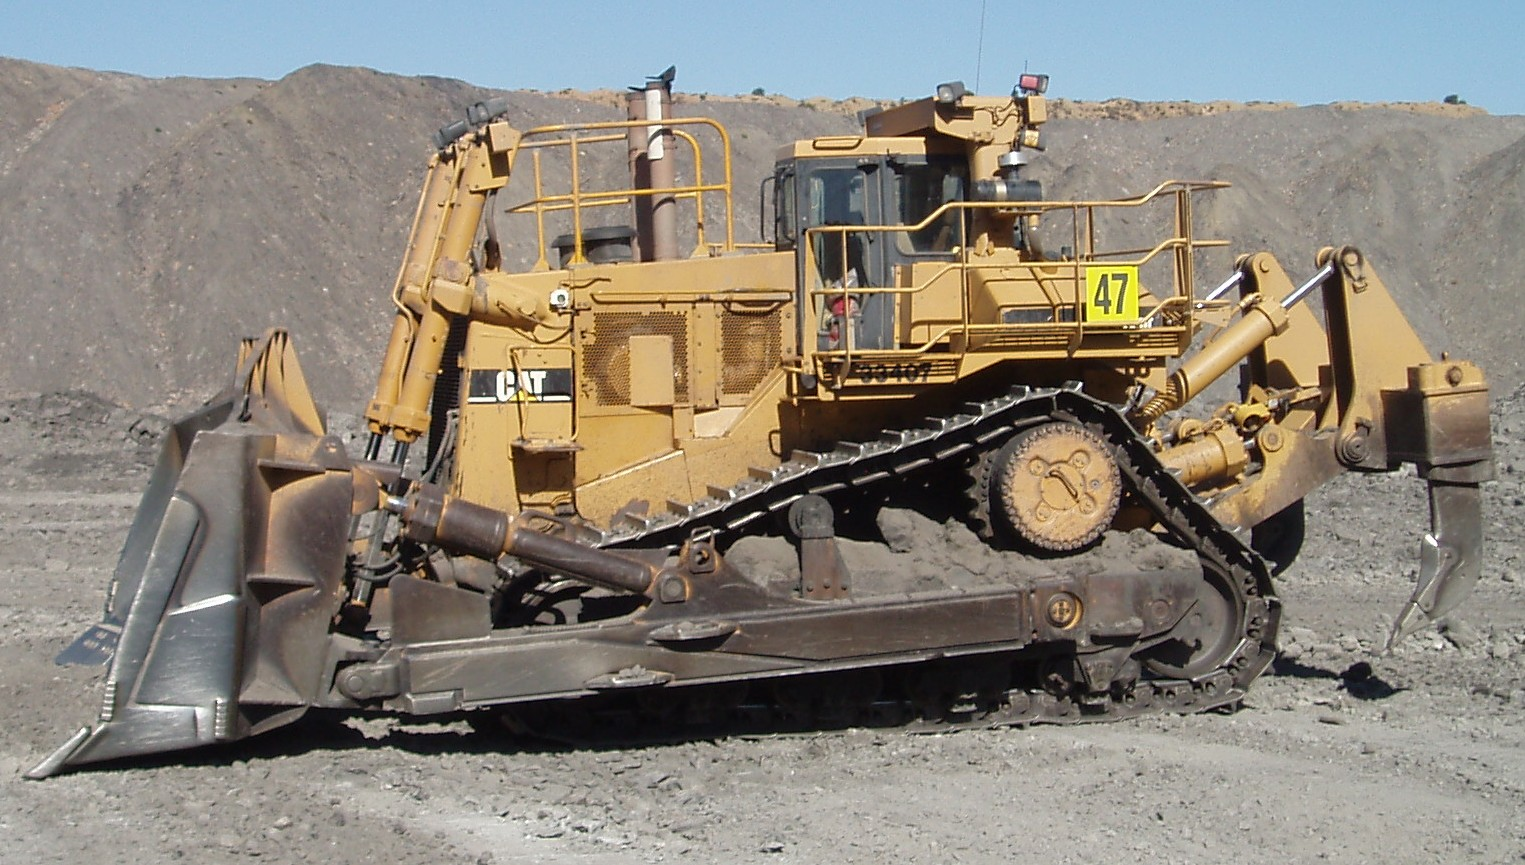 Caterpillar D11n Photos Photogallery With 6 Pics